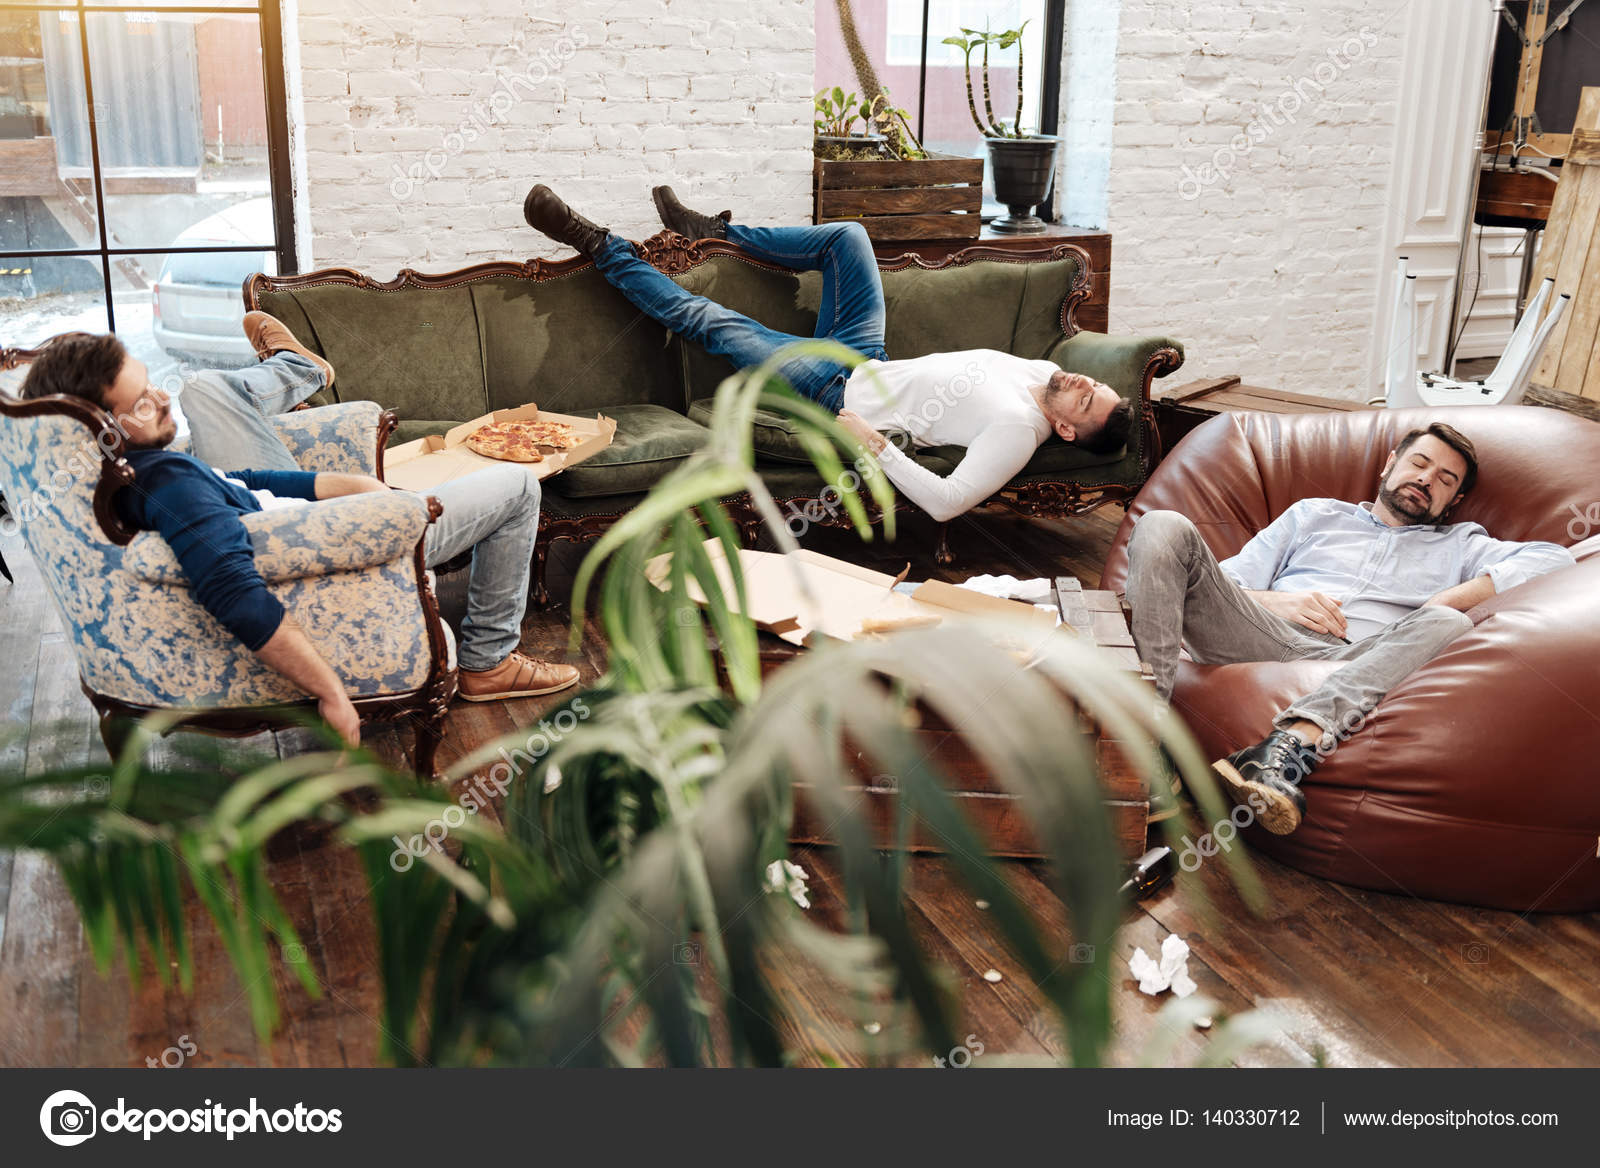 Handsome Attractive Men Sleeping In The Living Room U2014 Stock Photo #140330712 Part 86